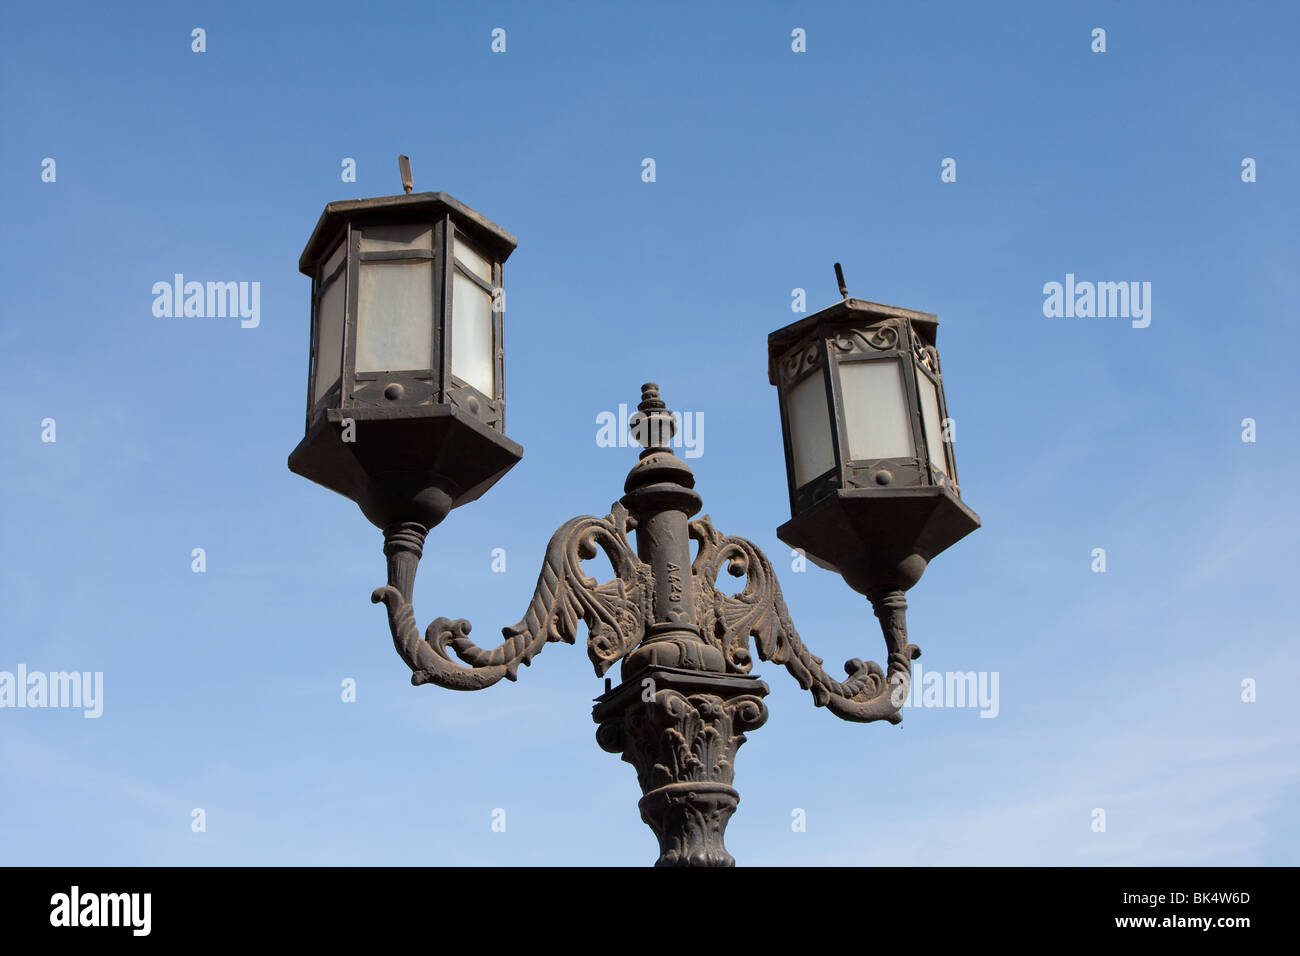 A street lamp in Sharm el Sheik, Egypt - Stock Image